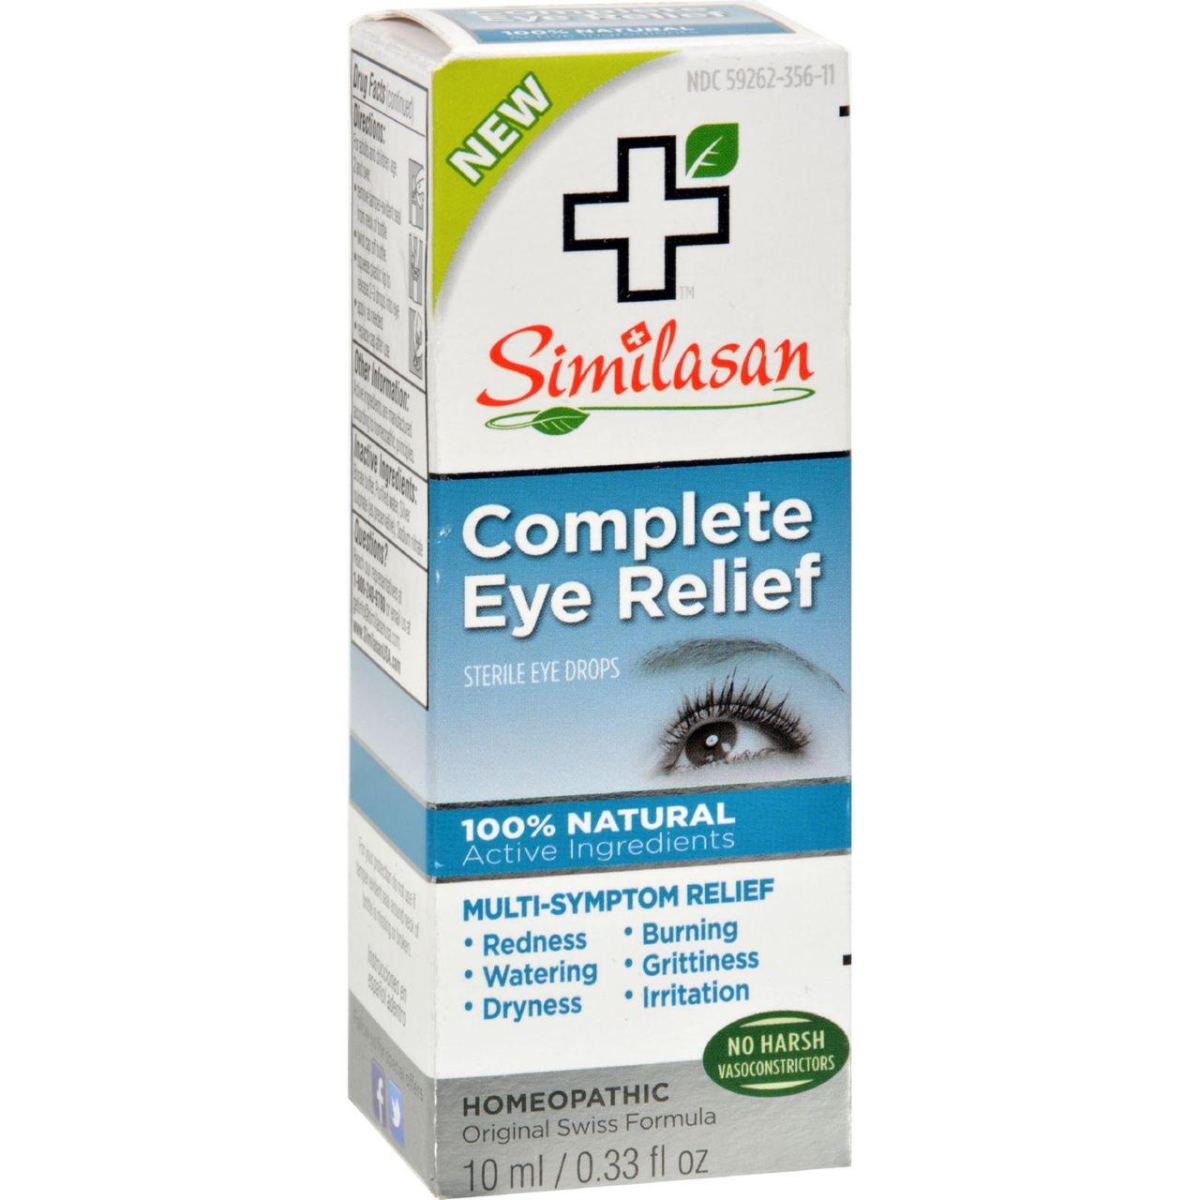 Similasan HG1510239 0.33 oz Eye Drops - Complete Relief